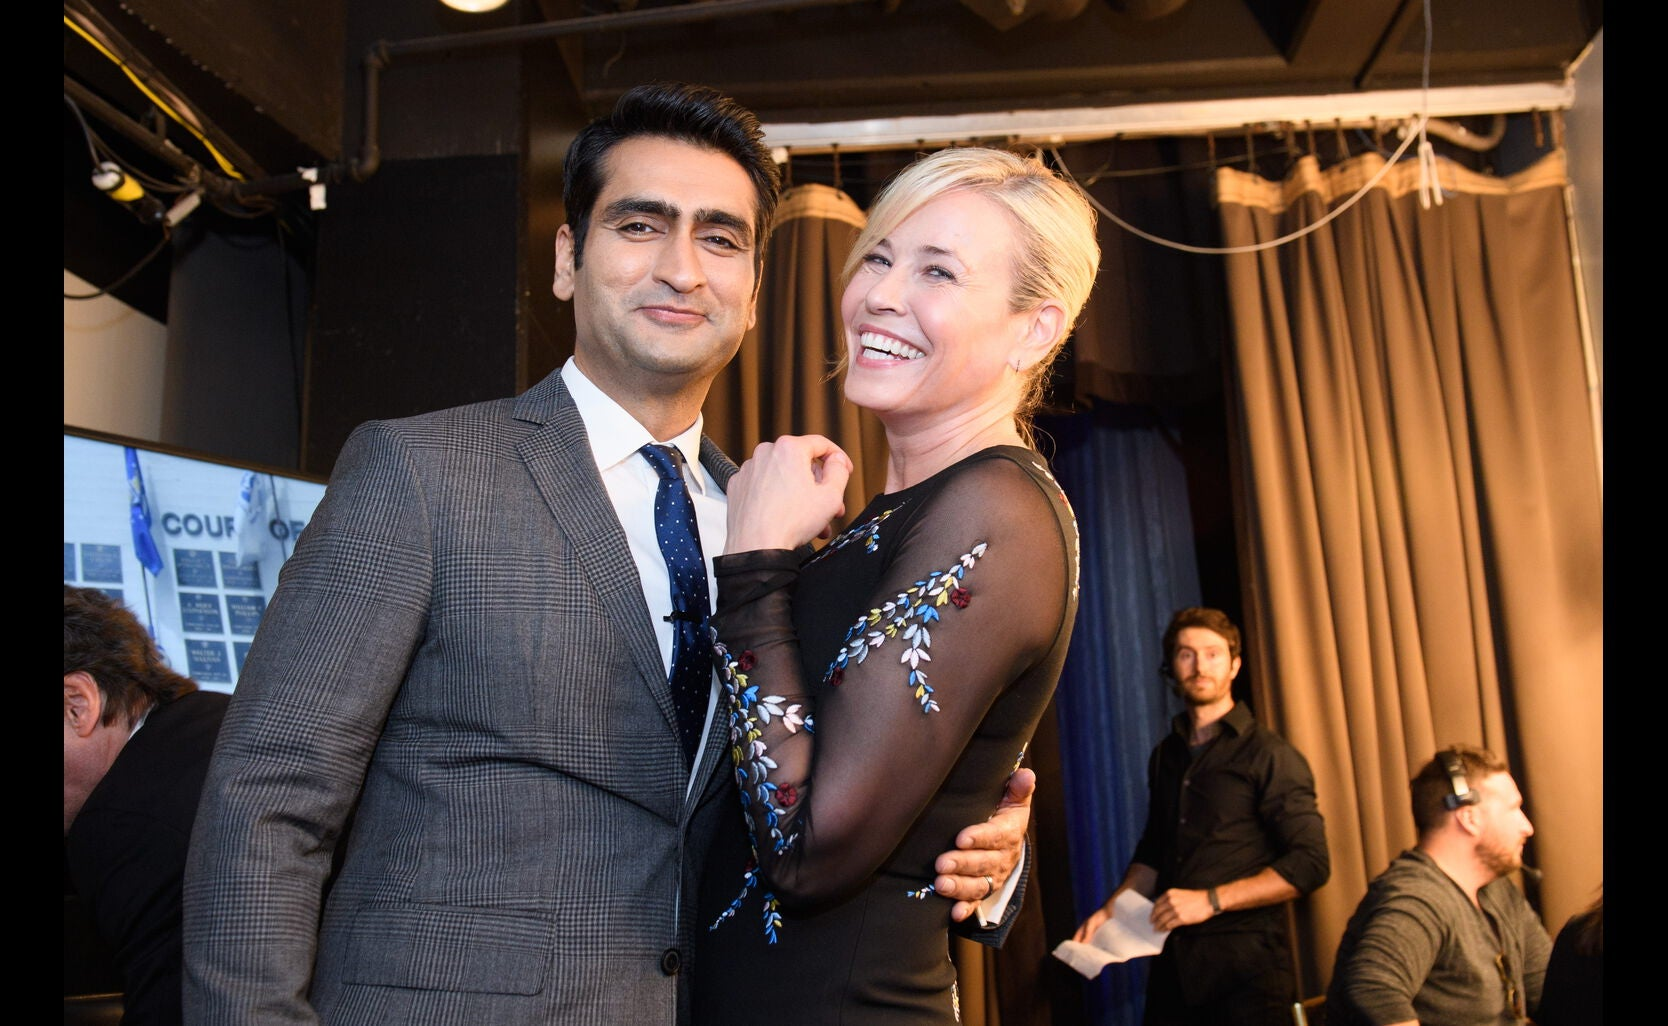 Presenter Kumail Najiani and host Chelsea Handler